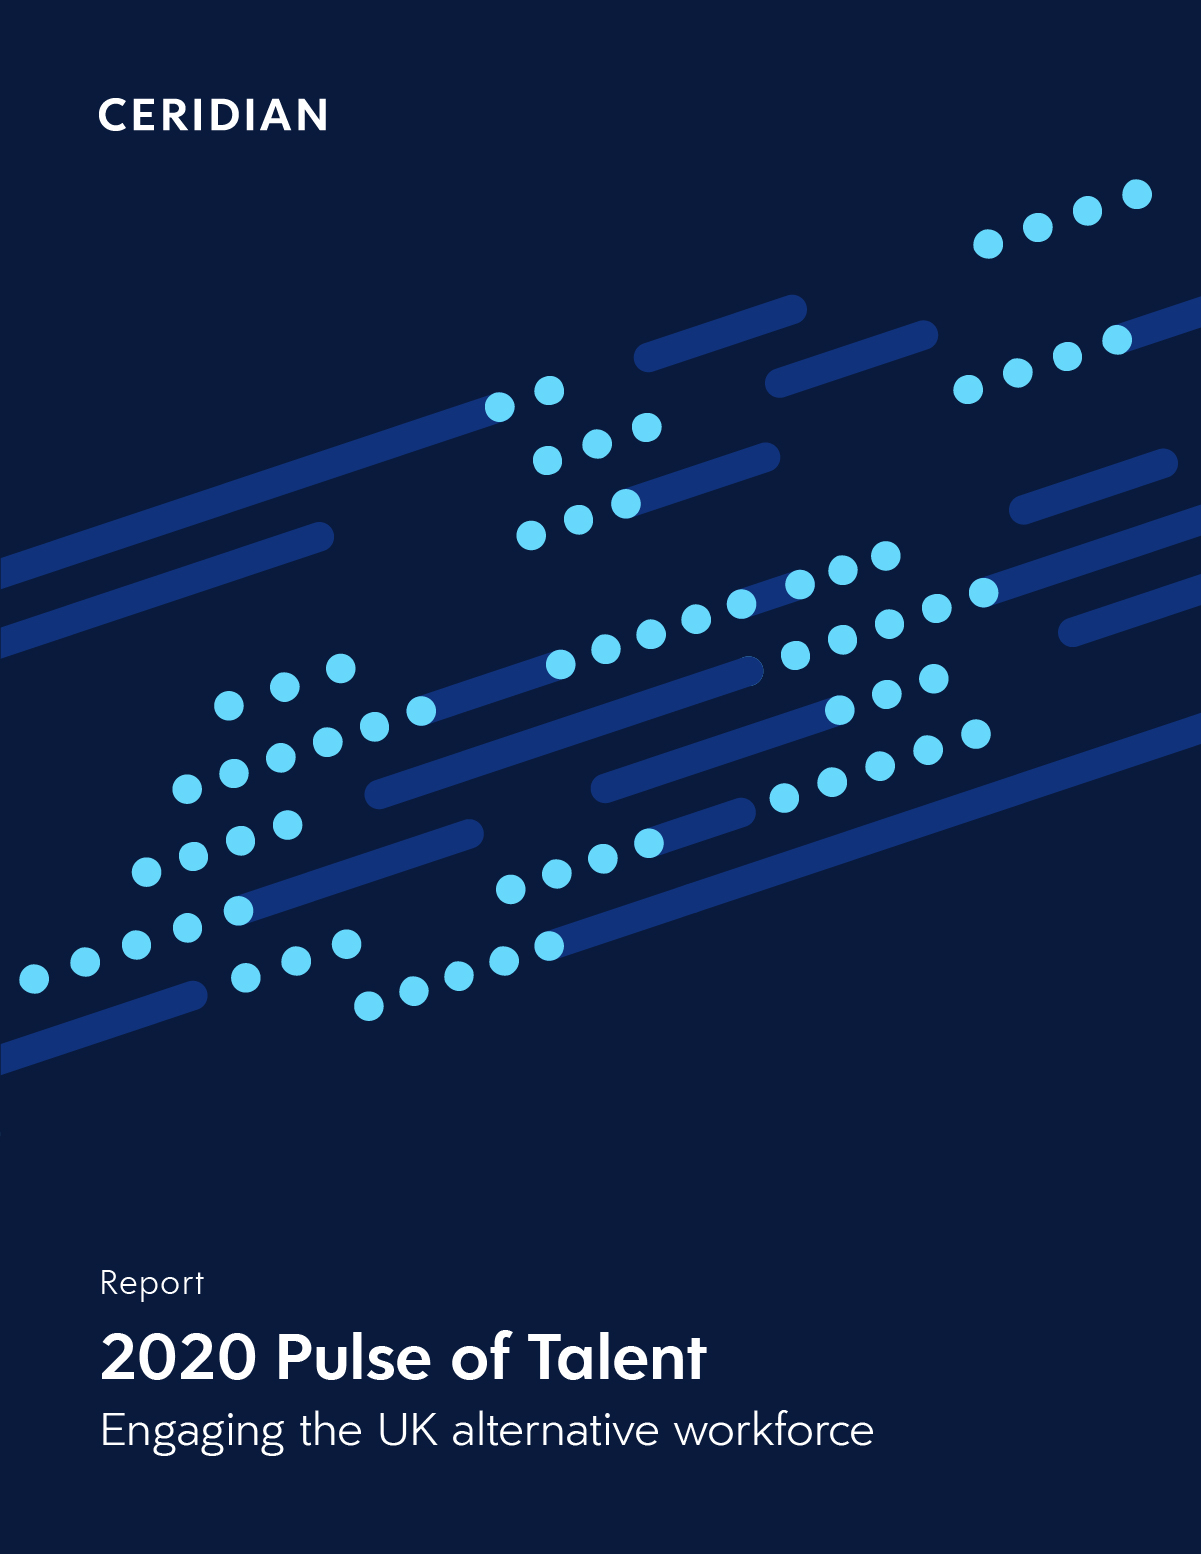 Pulse of Talent 2020 Report - UK edition